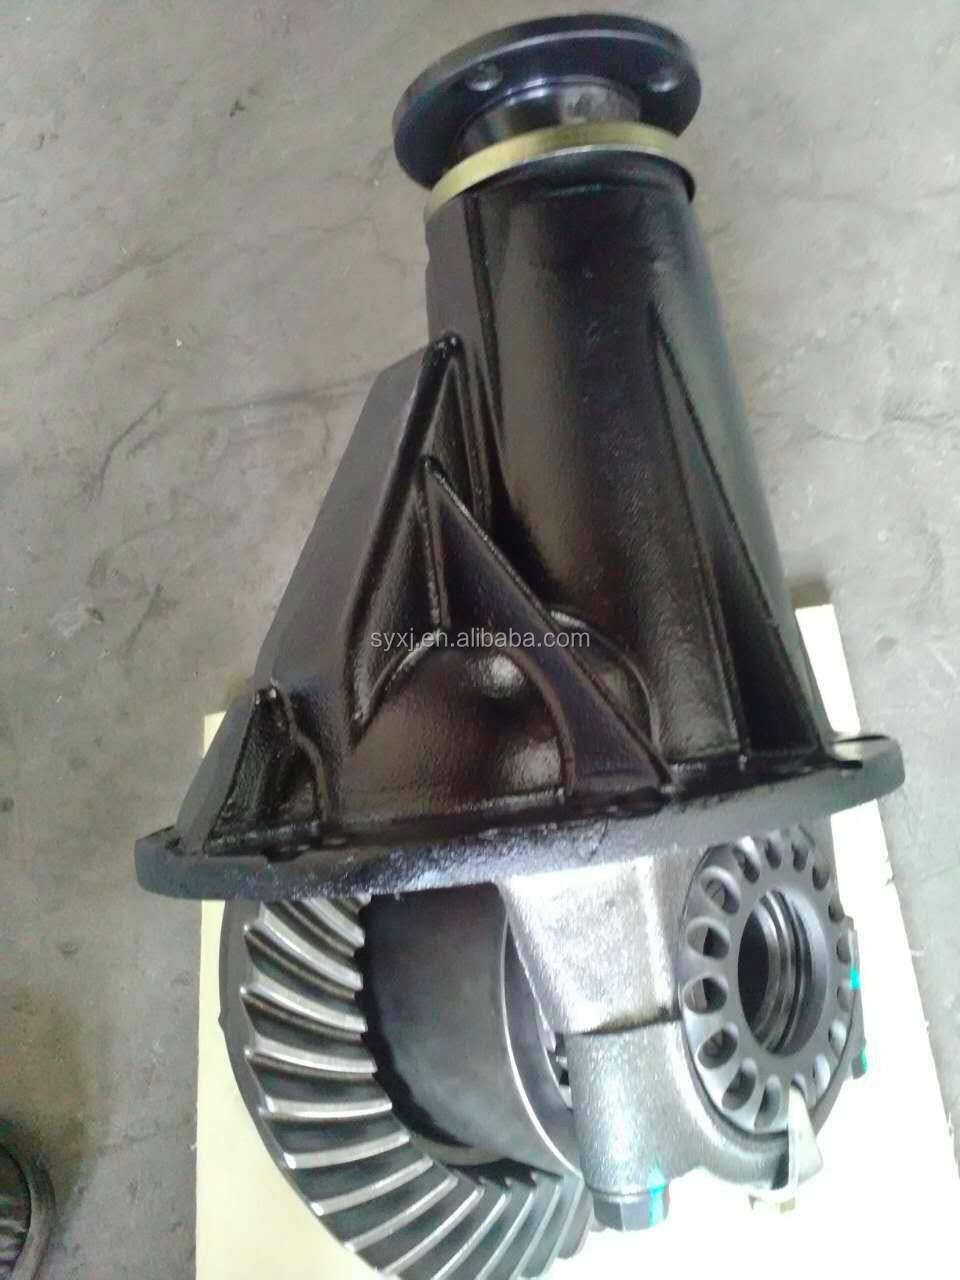 Hiace Hilux Auto Axle Rear Complete Differential With